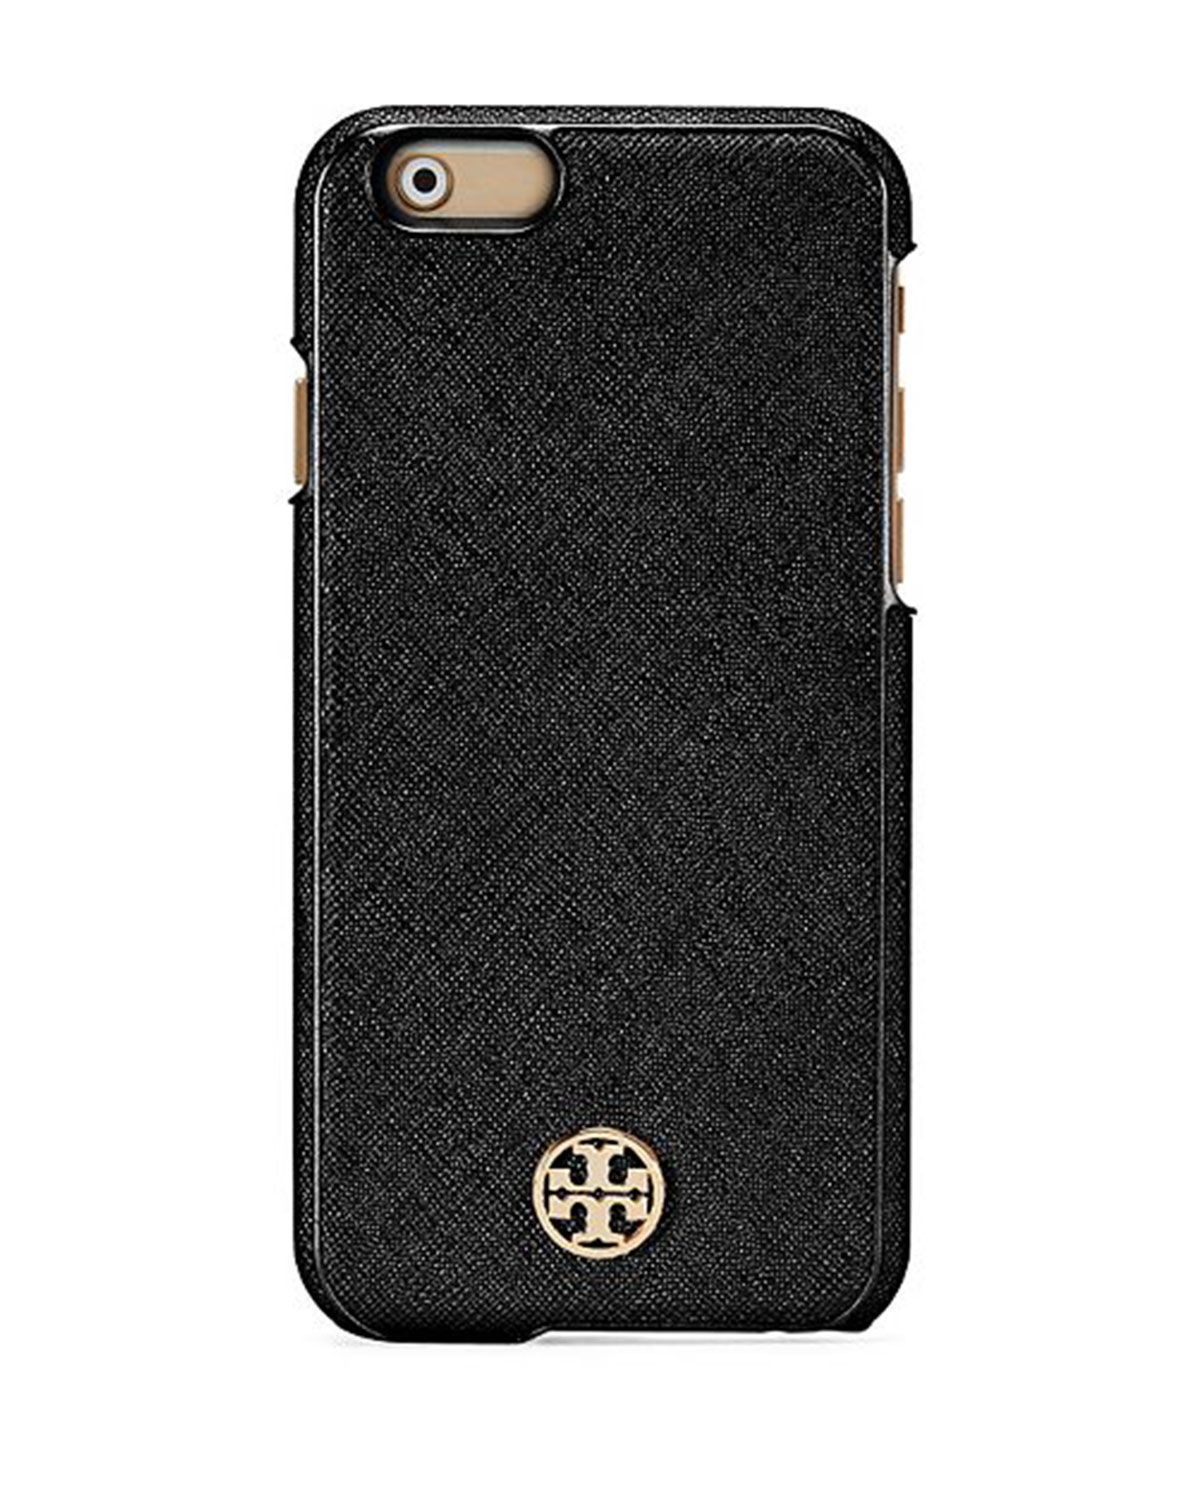 etui na iphone 6 tory burch kup teraz najlepsze ceny i opinie sklep. Black Bedroom Furniture Sets. Home Design Ideas